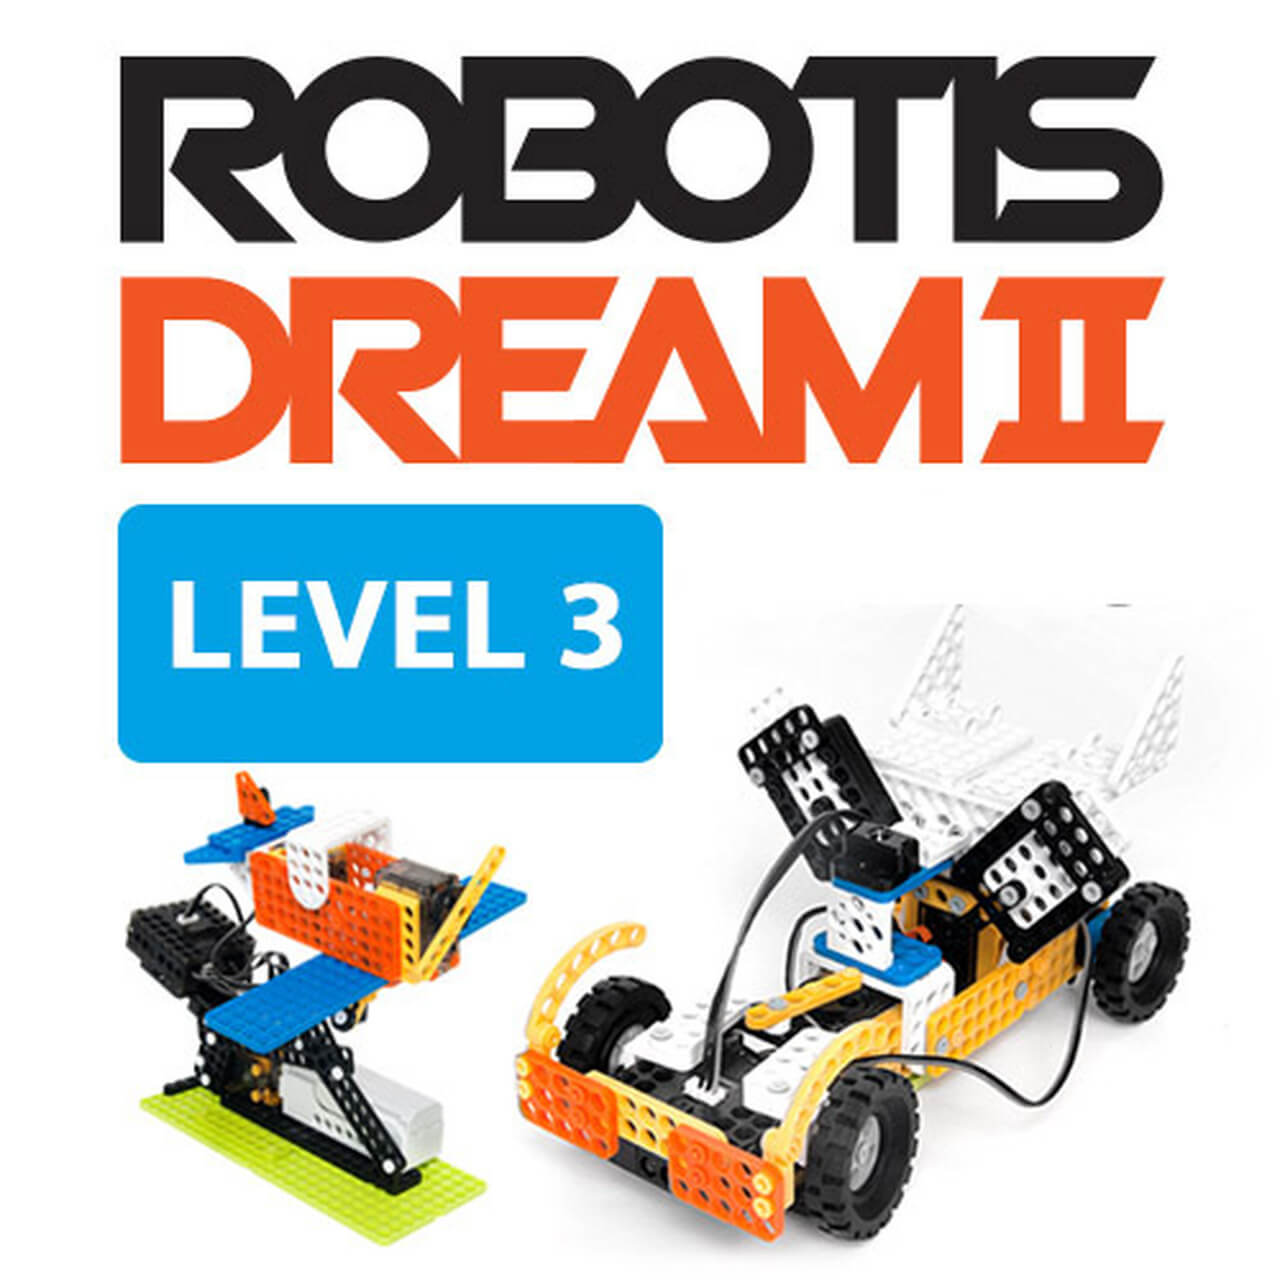 ROBOTIS-DREAM-Level-3.jpg (270 KB)